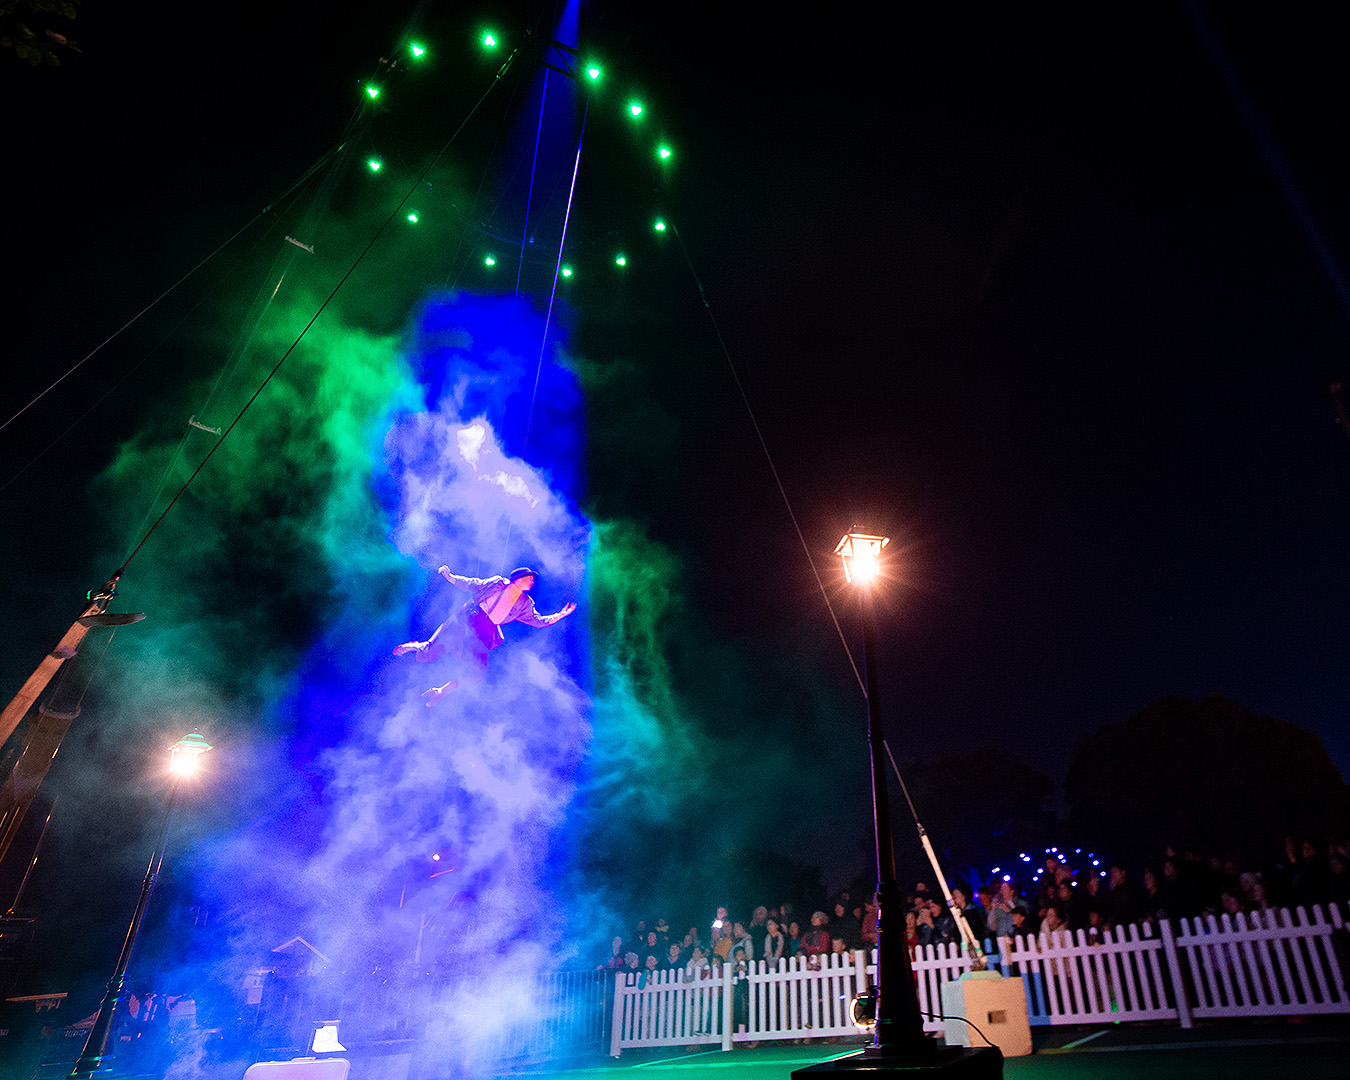 A person flies into the sky at the alien abduction.